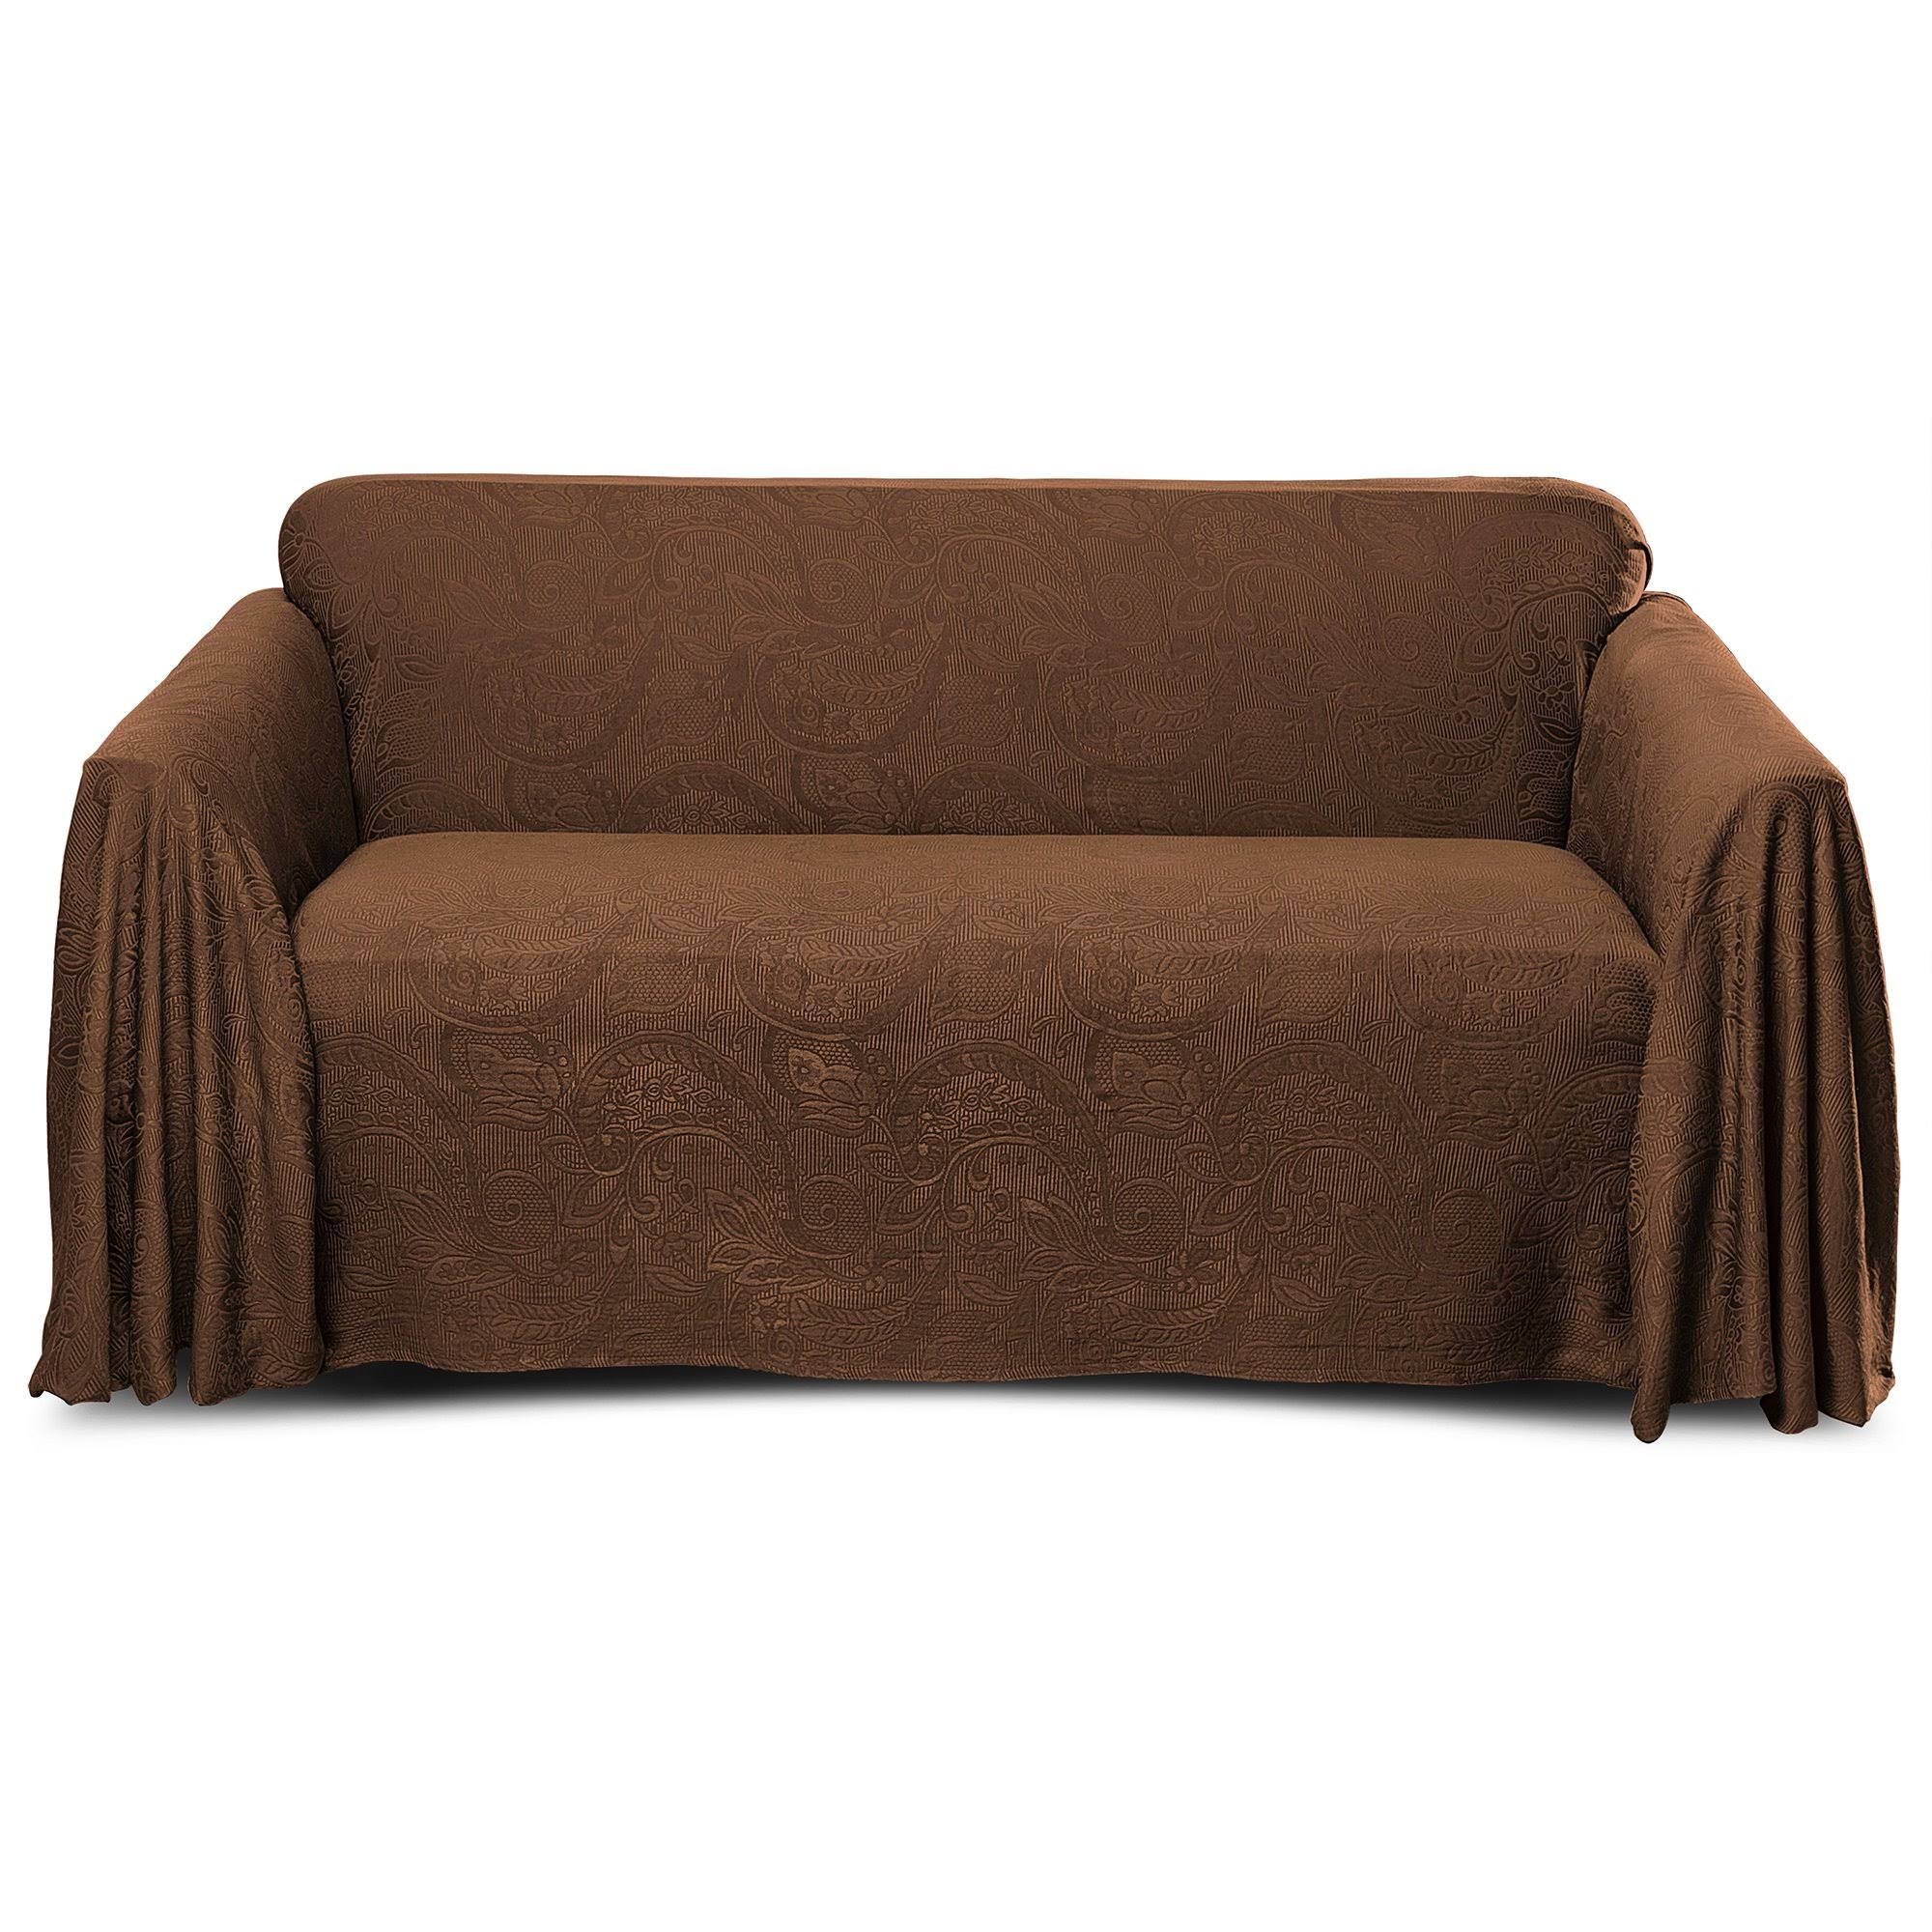 Stylemaster Alexandria Furniture Throw, Sofa, Chocolate